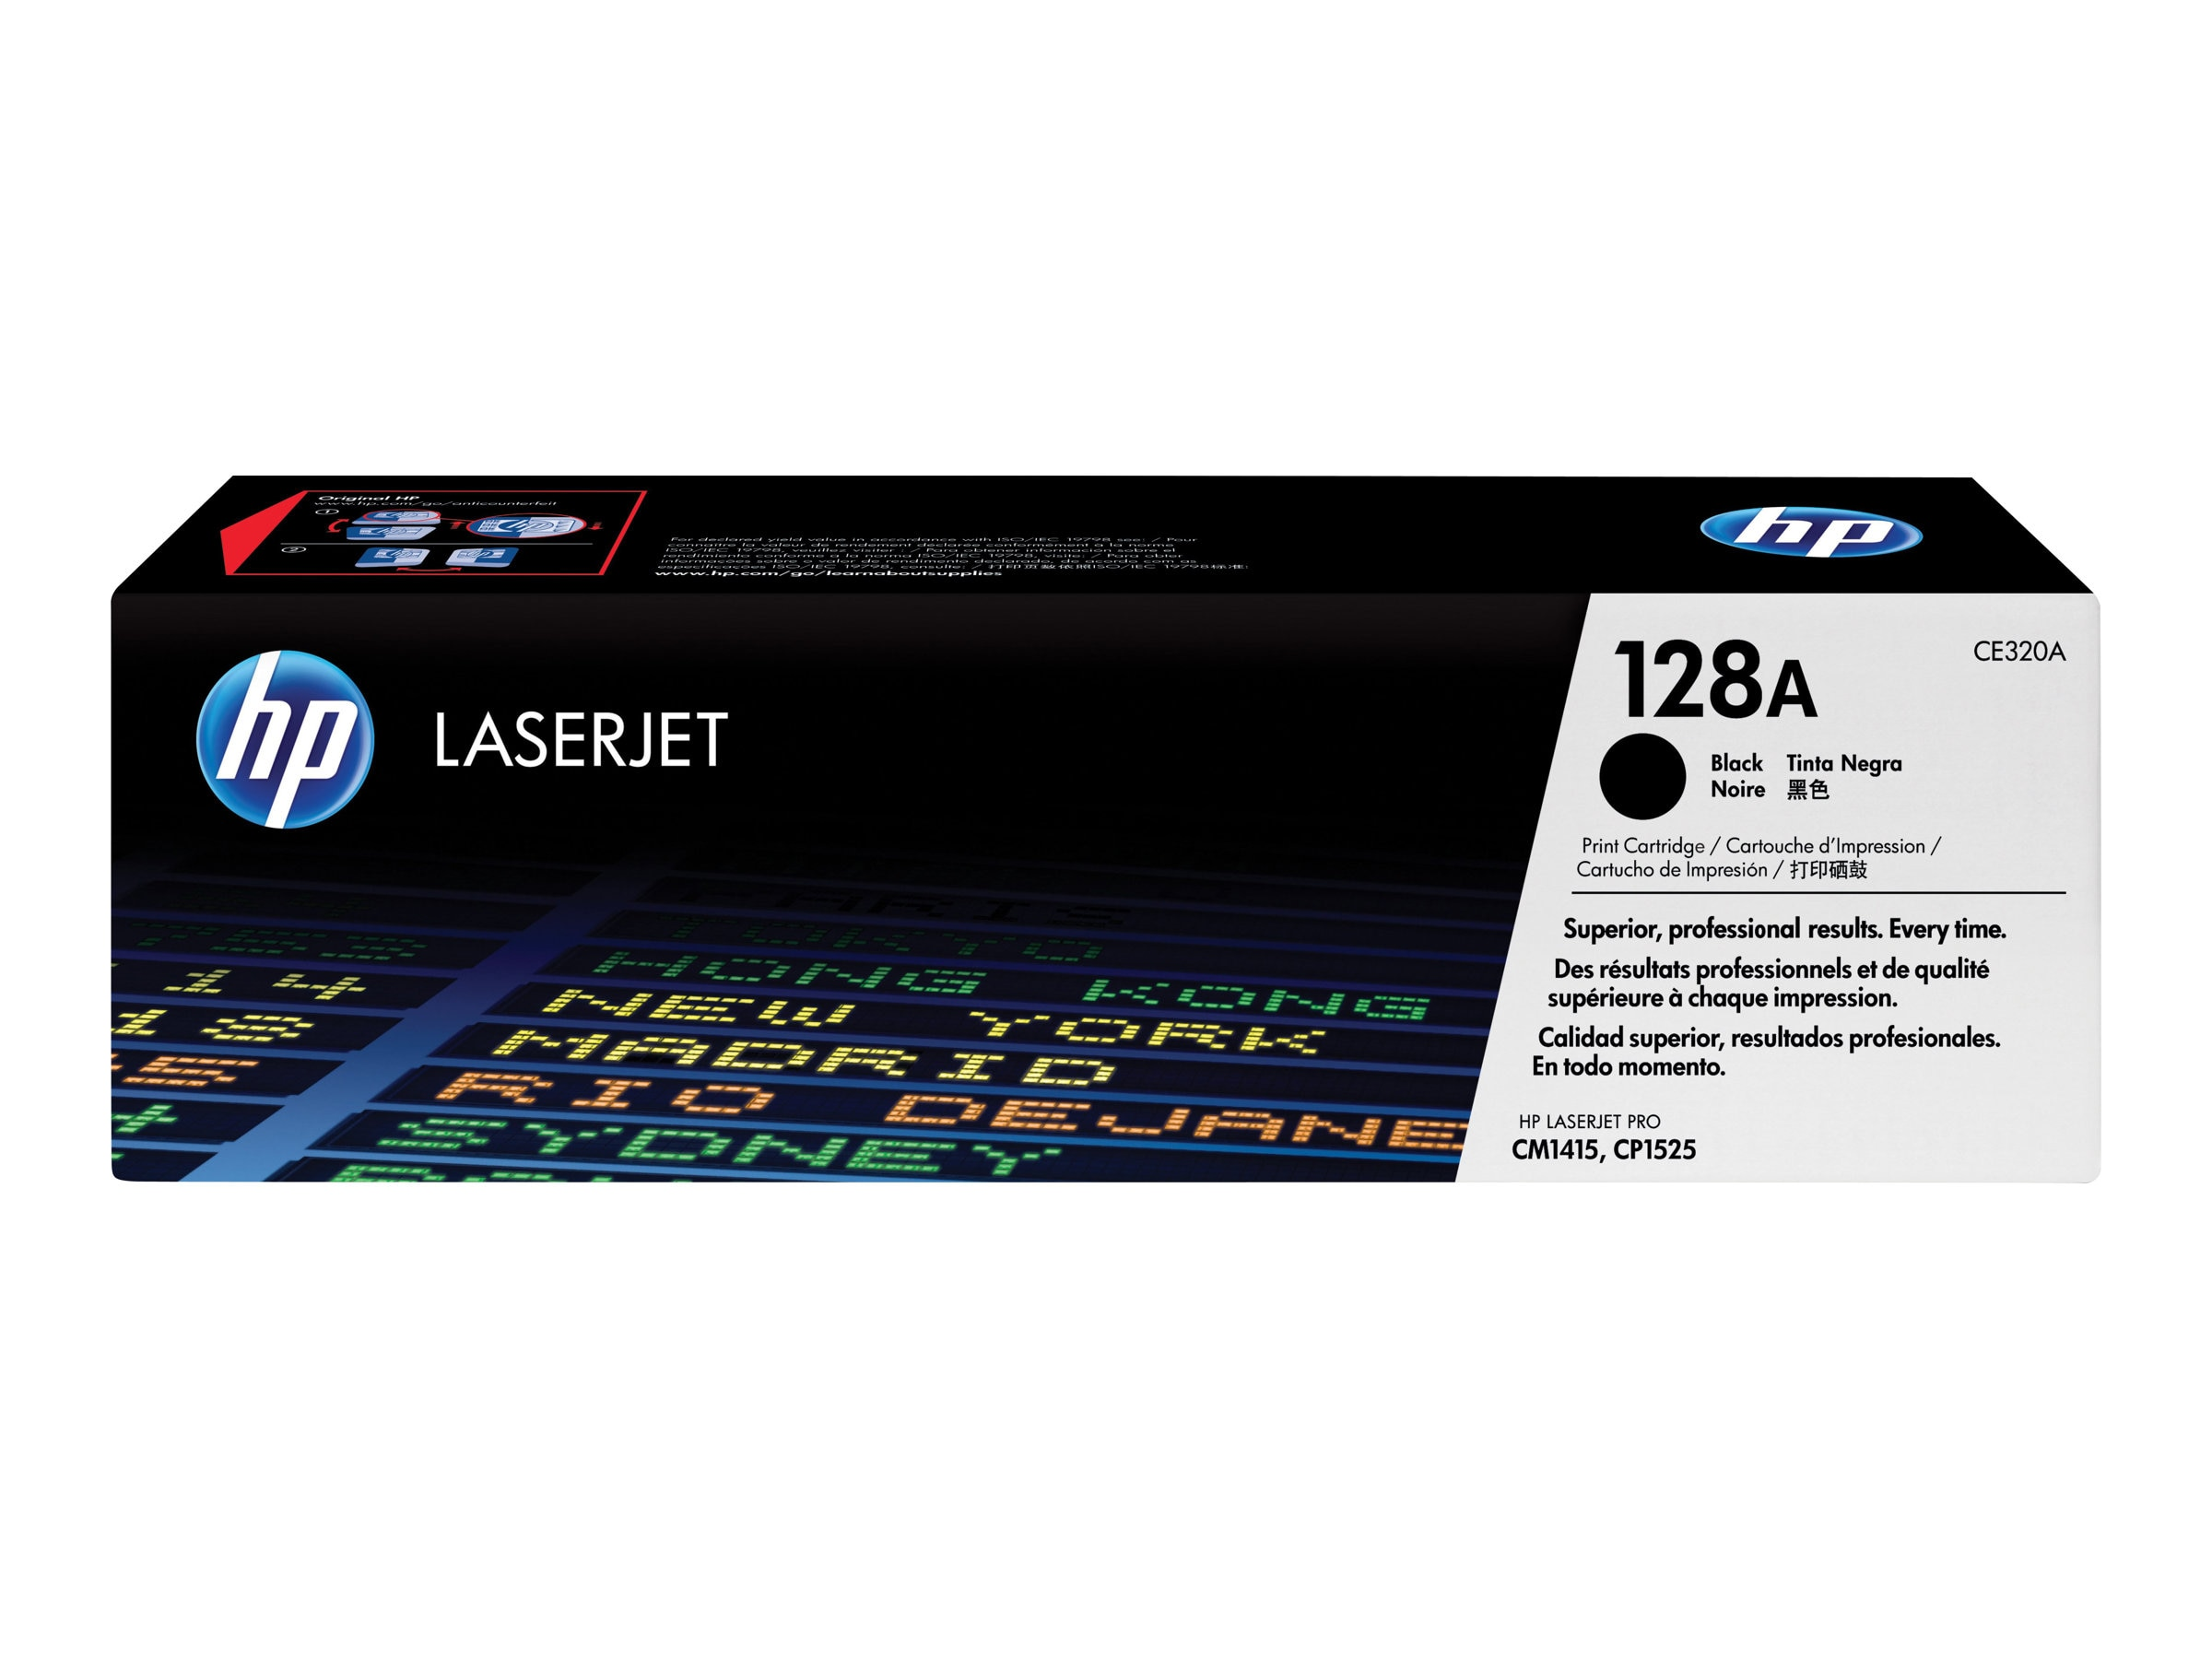 HP 128A (CE320A) Black Original LaserJet Toner Cartridge for HP LaserJet CM1415 & CP1525nw, CE320A, 11845455, Toner and Imaging Components